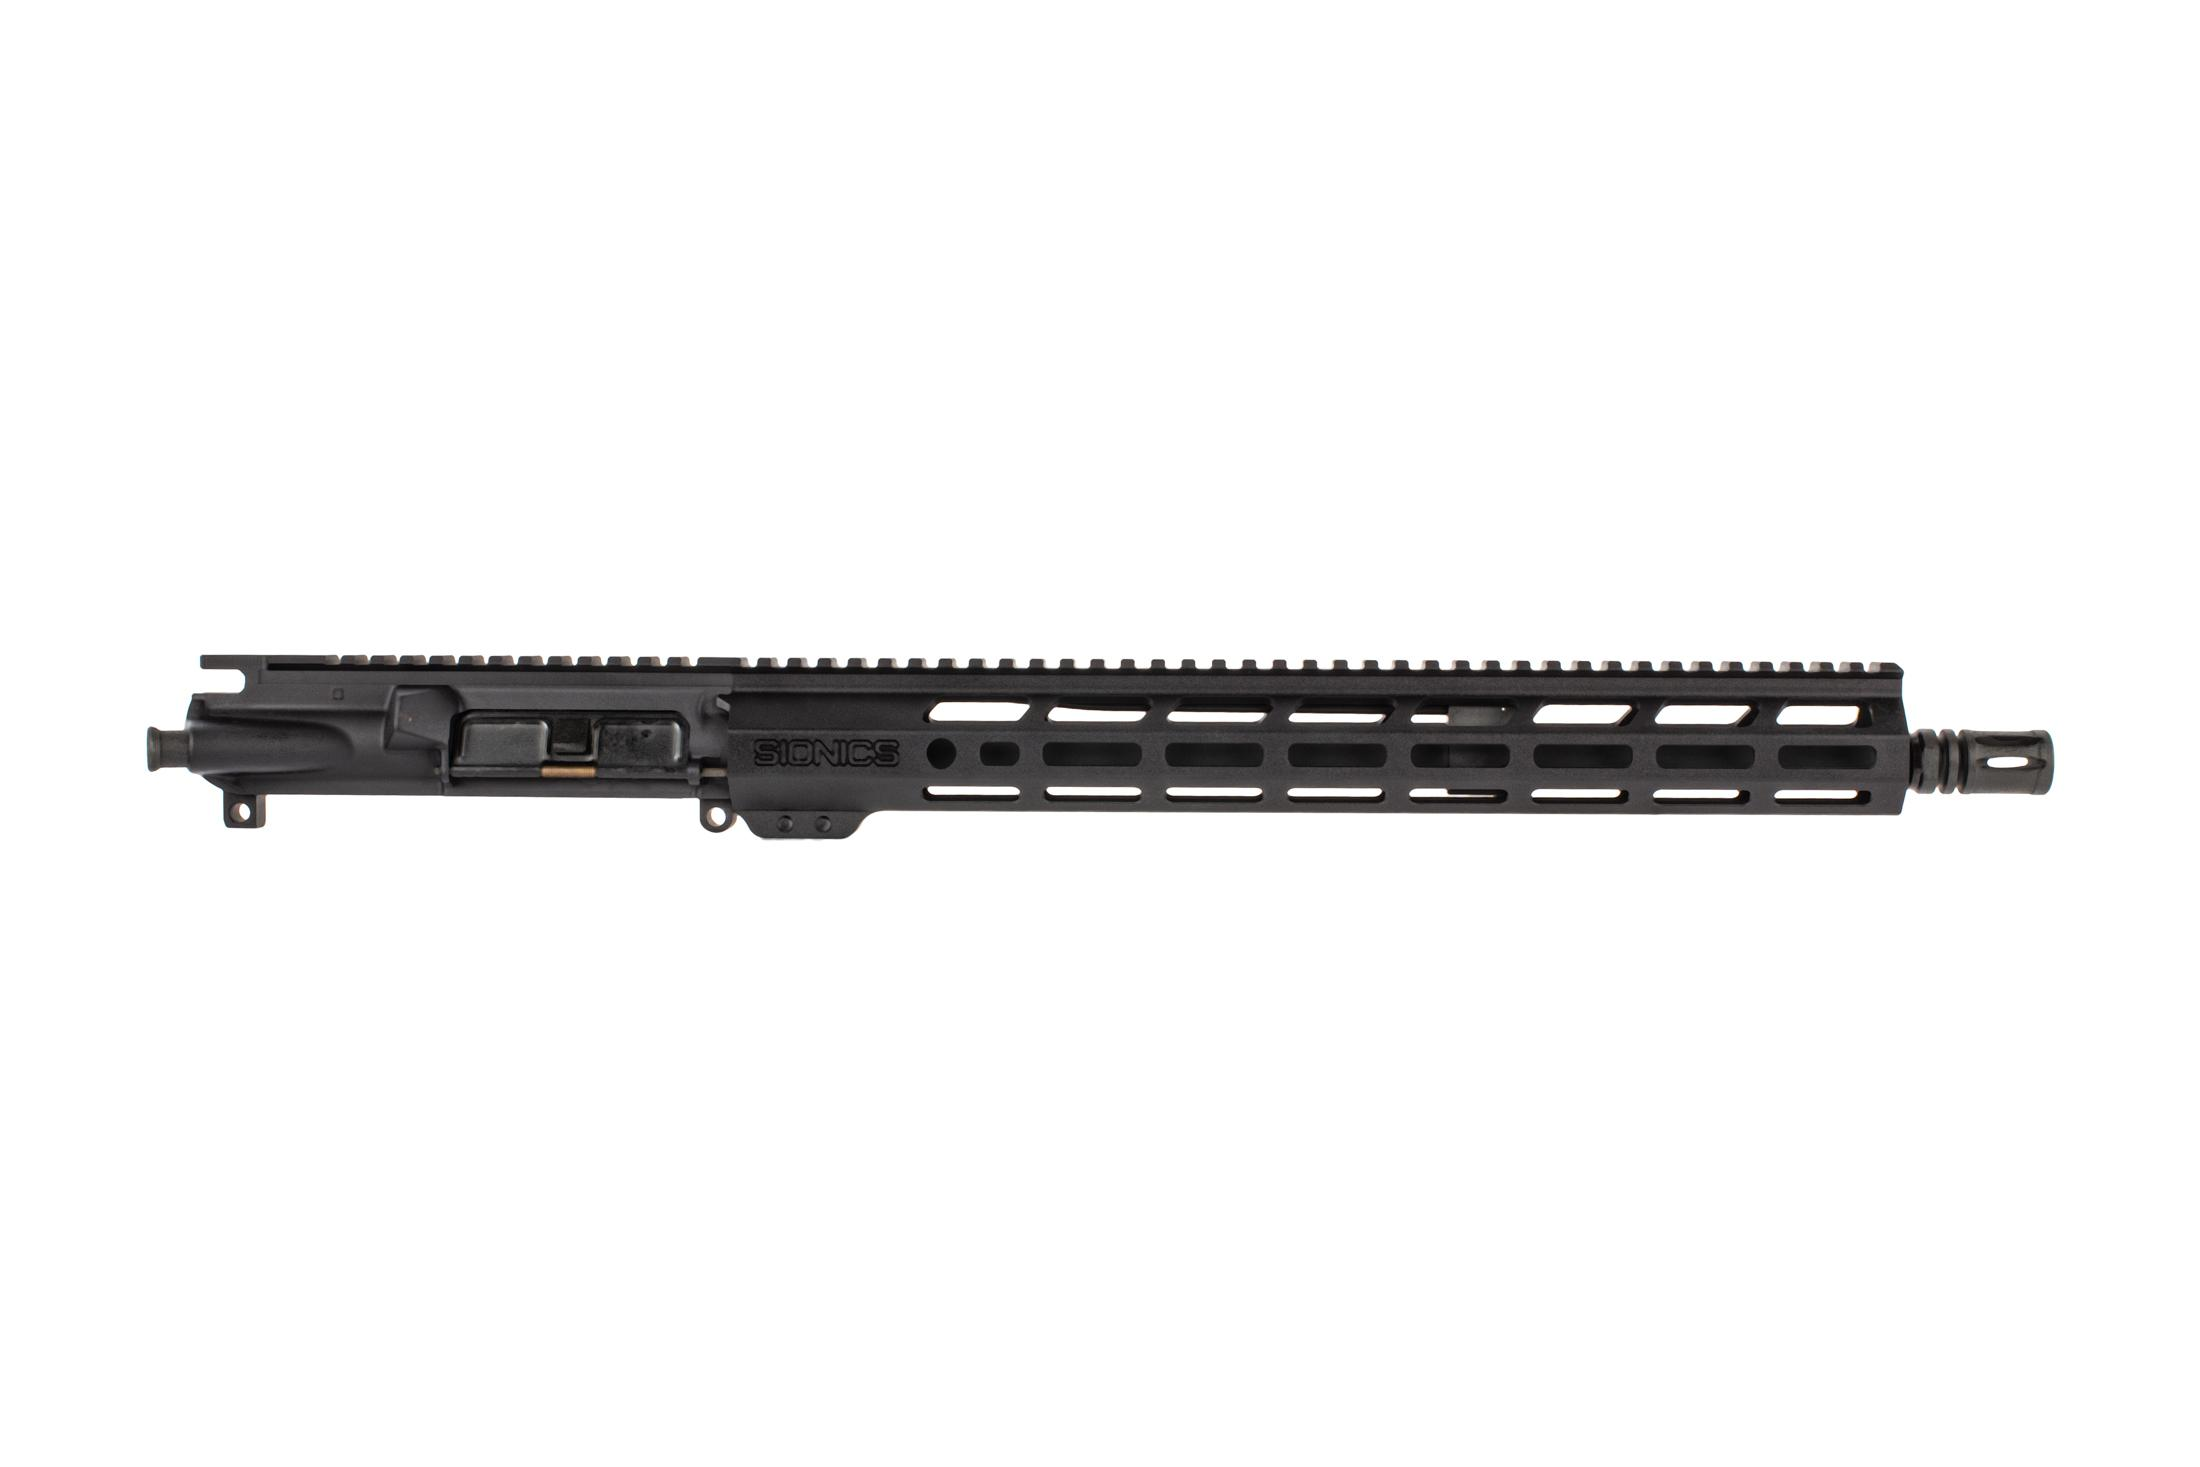 Sionics Weapon Systems Patrol Three Lightweight AR15 barreled upper receiver features a midlength gas system